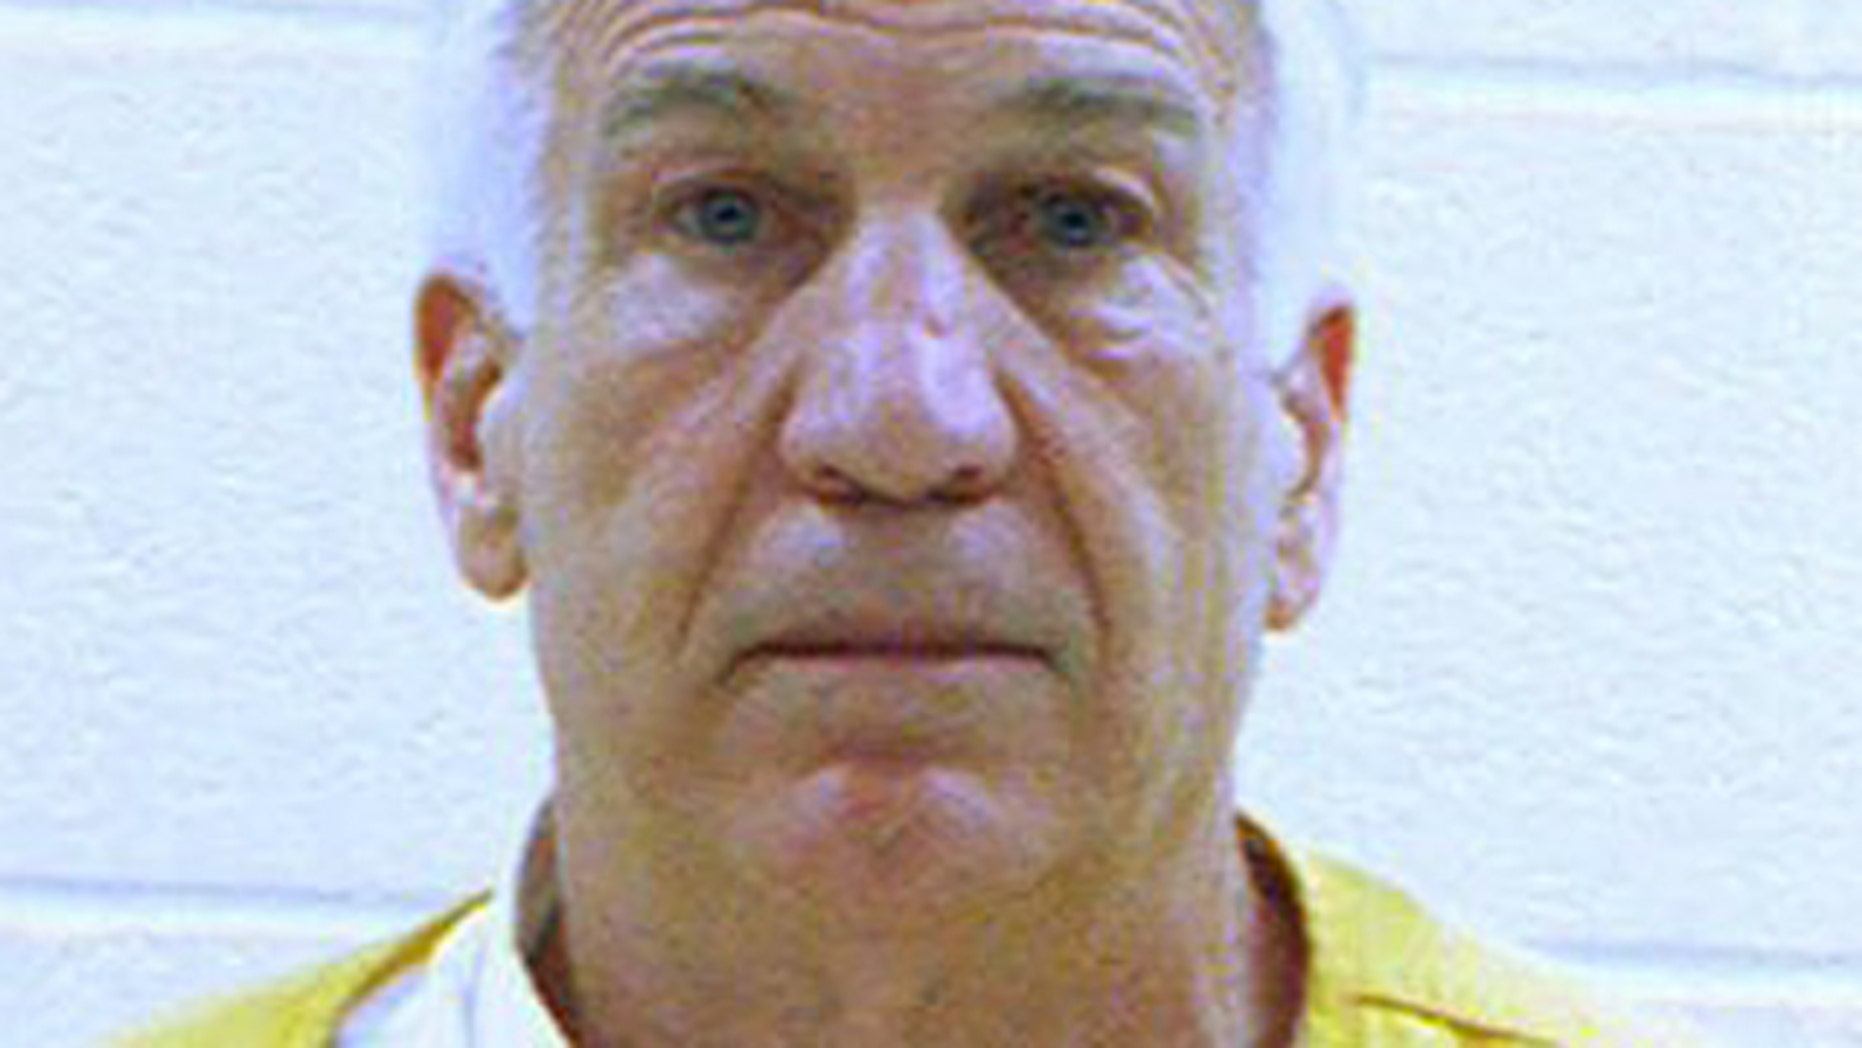 June 23, 2012: Former Penn State University assistant football coach Jerry Sandusky is shown in a booking photo. (AP/Centre County Correctional Facility)